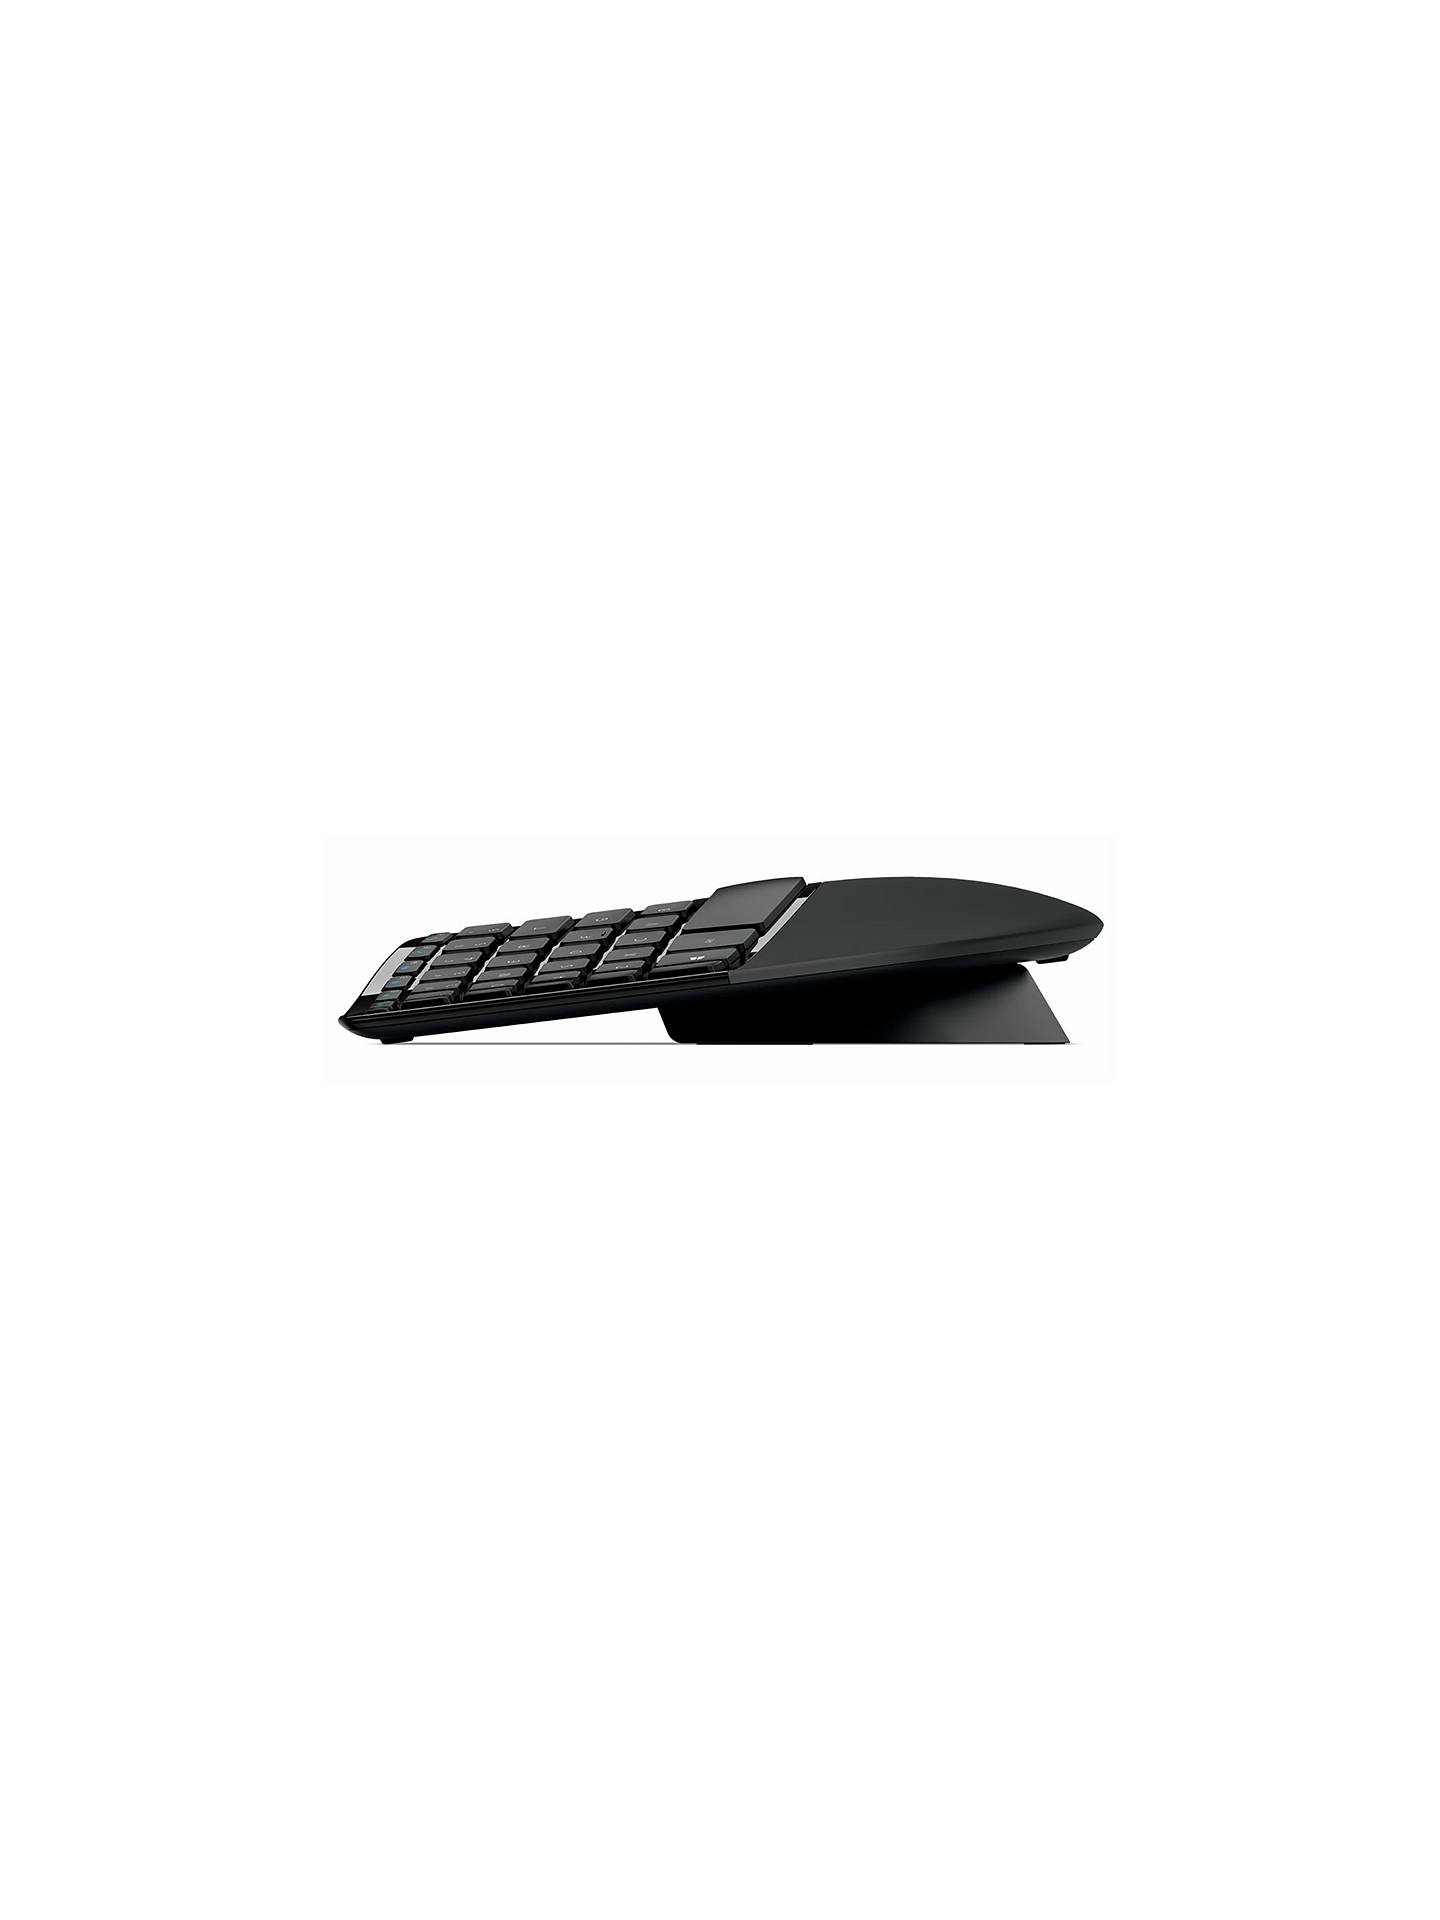 BuyMicrosoft Sculpt Ergonomic Desktop Keyboard and Mouse, Black Online at johnlewis.com